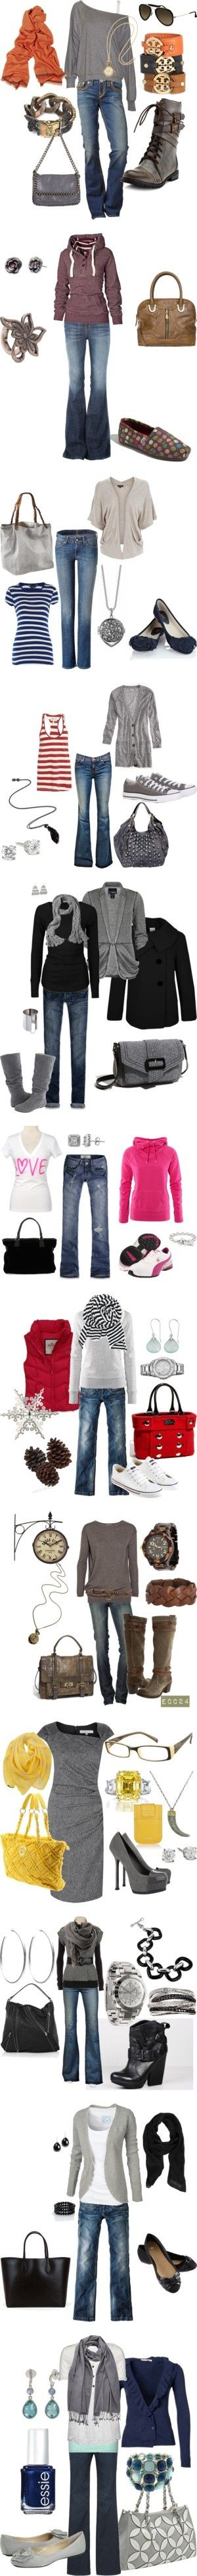 I'd wear all of it except the boots and flats... only the Pumas and I'd go with flippy floppys.